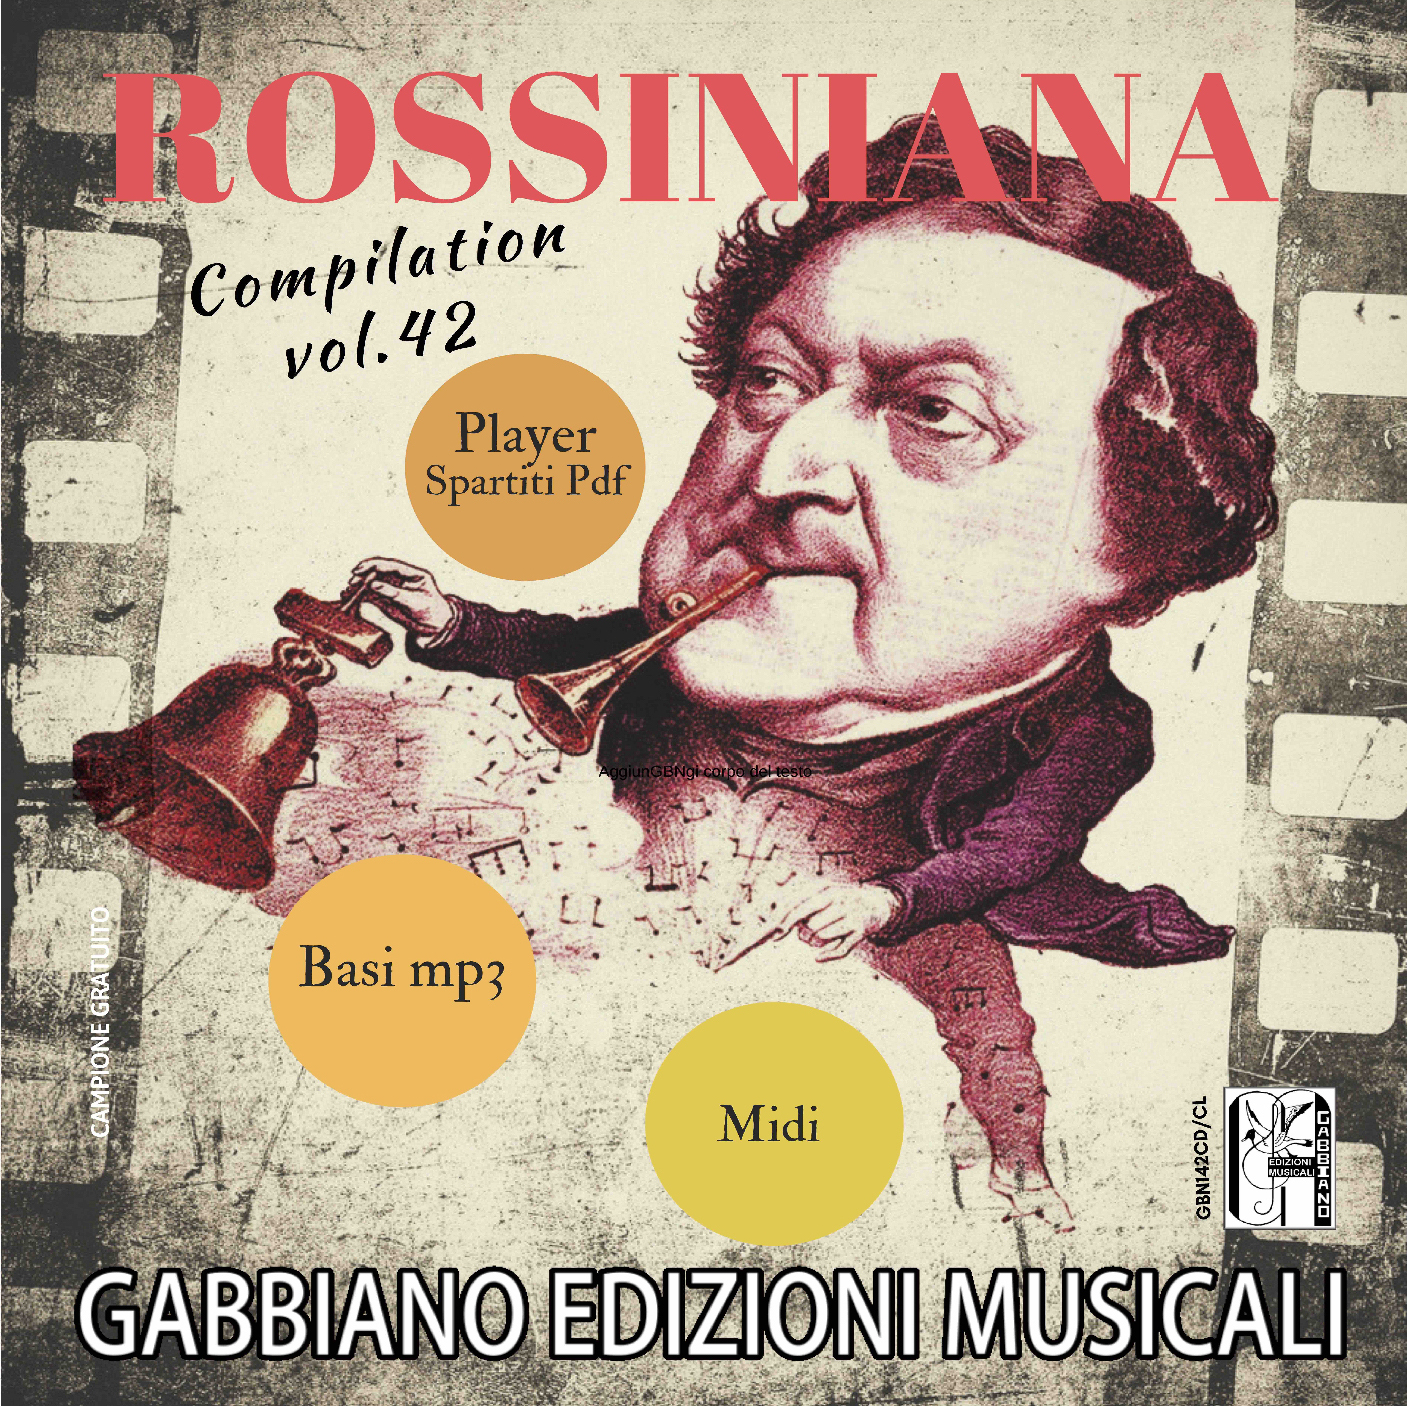 GBN142CD/CL - ROSSINIANA (compilation) - Volume 42